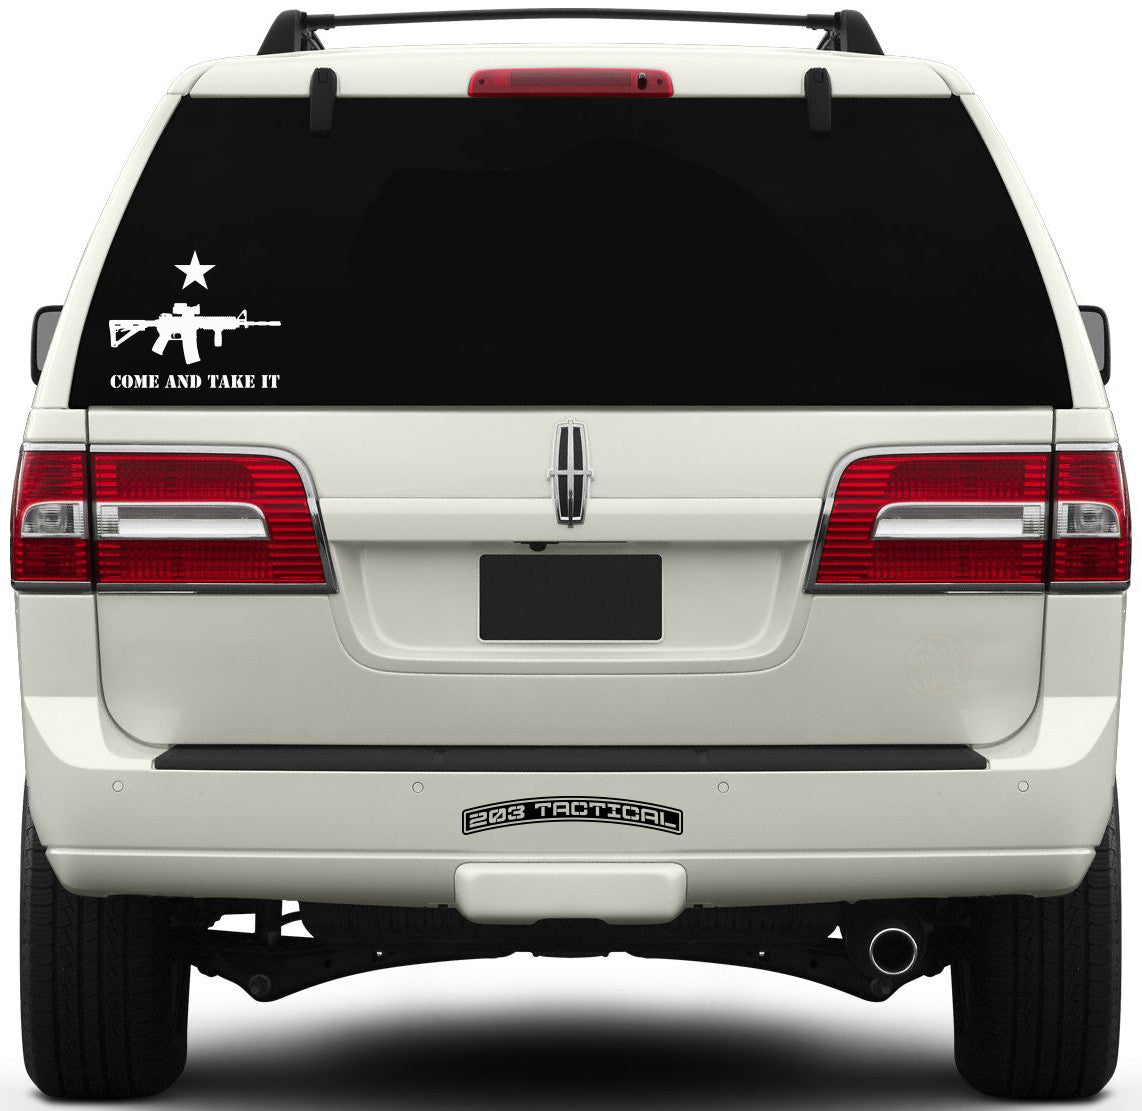 Come and Take It Window Decal - AR-15 & Lone Star - Small